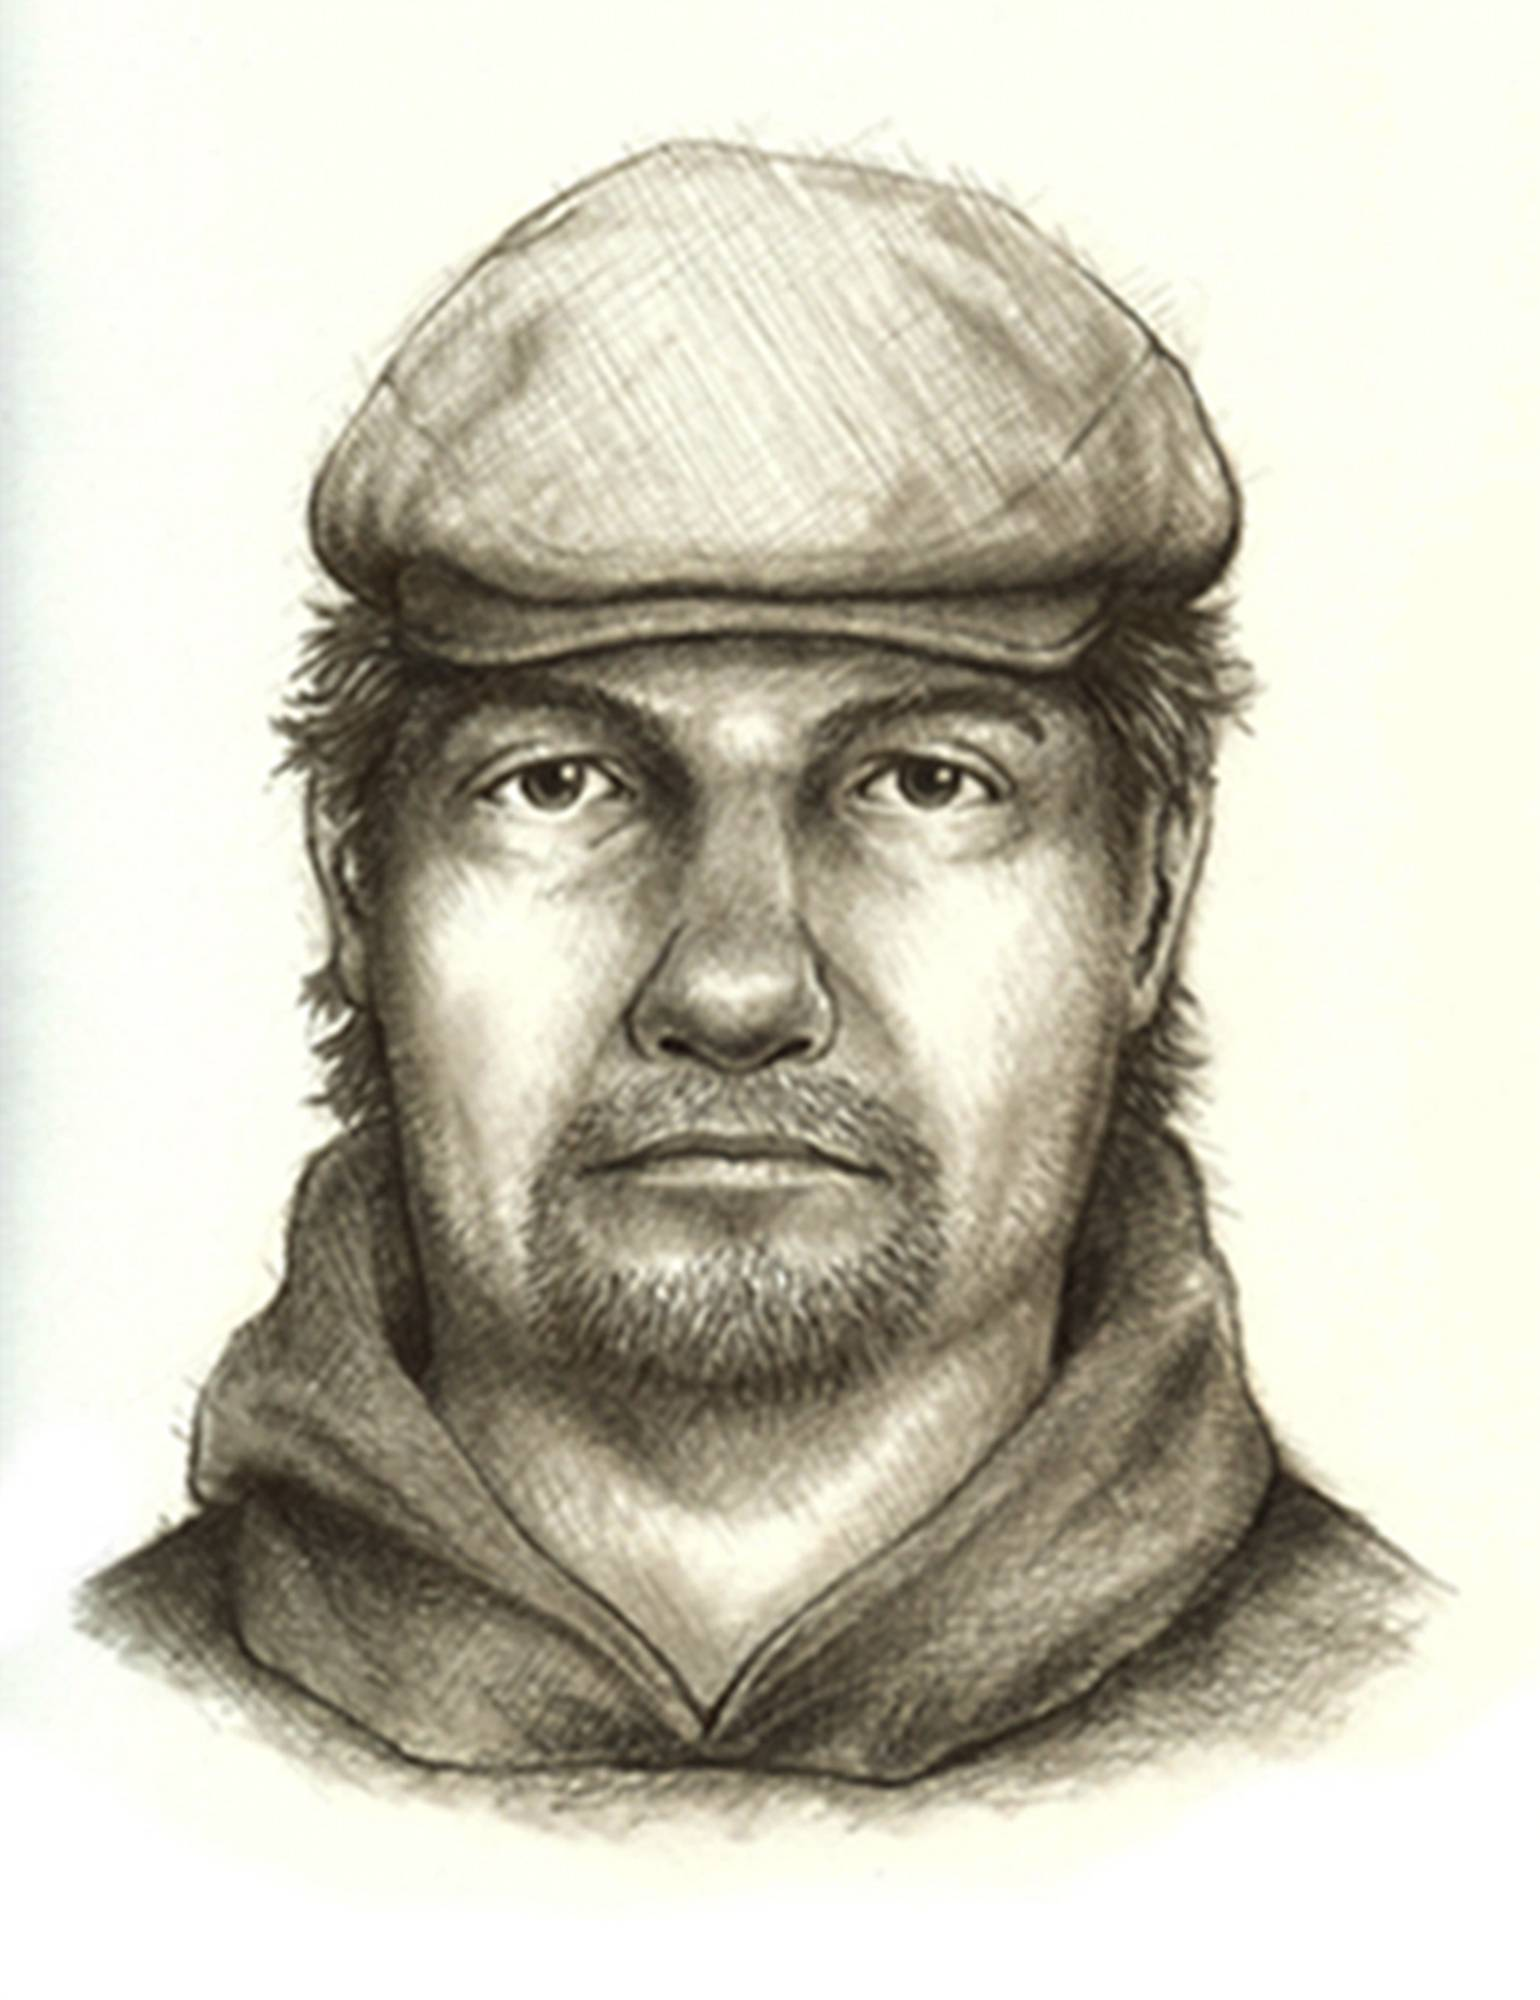 This composite sketch released by the Indiana State Police shows the man they consider the main suspect in the killings of teenage girls Liberty German, and Abigail Williams who disappeared from a hiking trail near their hometown of Delphi on Feb. 13, 2017.